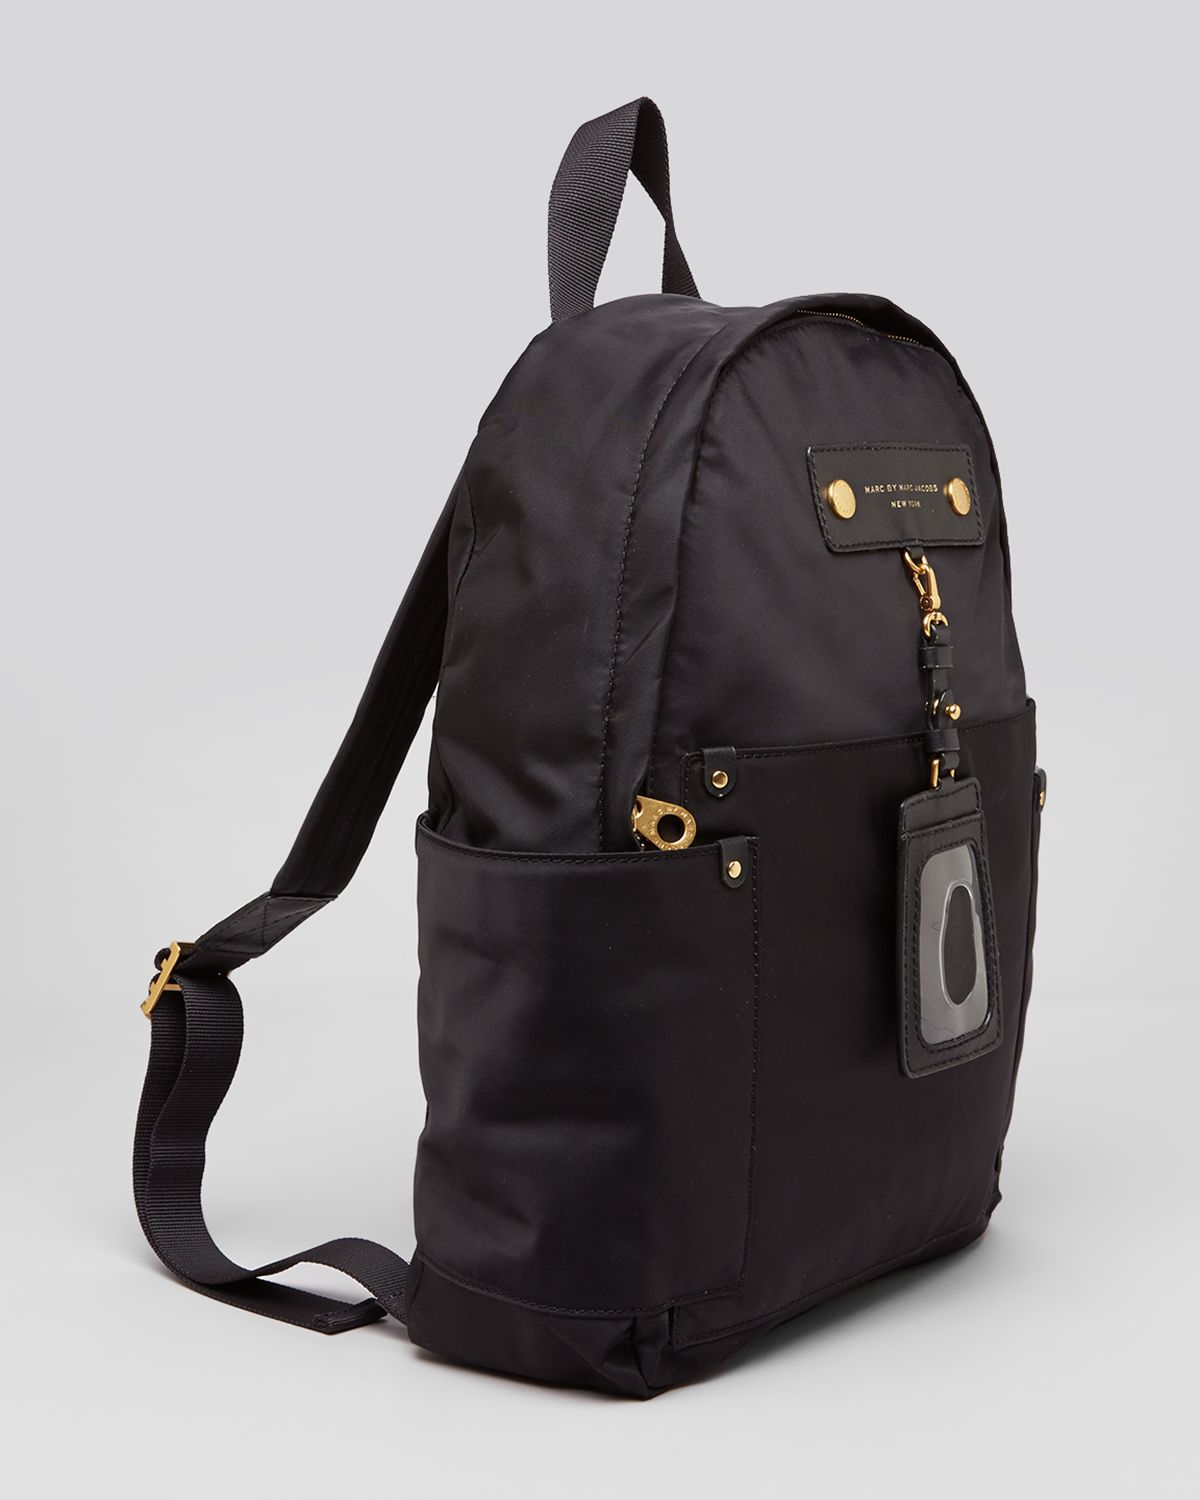 marc by marc jacobs backpack preppy nylon in black lyst. Black Bedroom Furniture Sets. Home Design Ideas